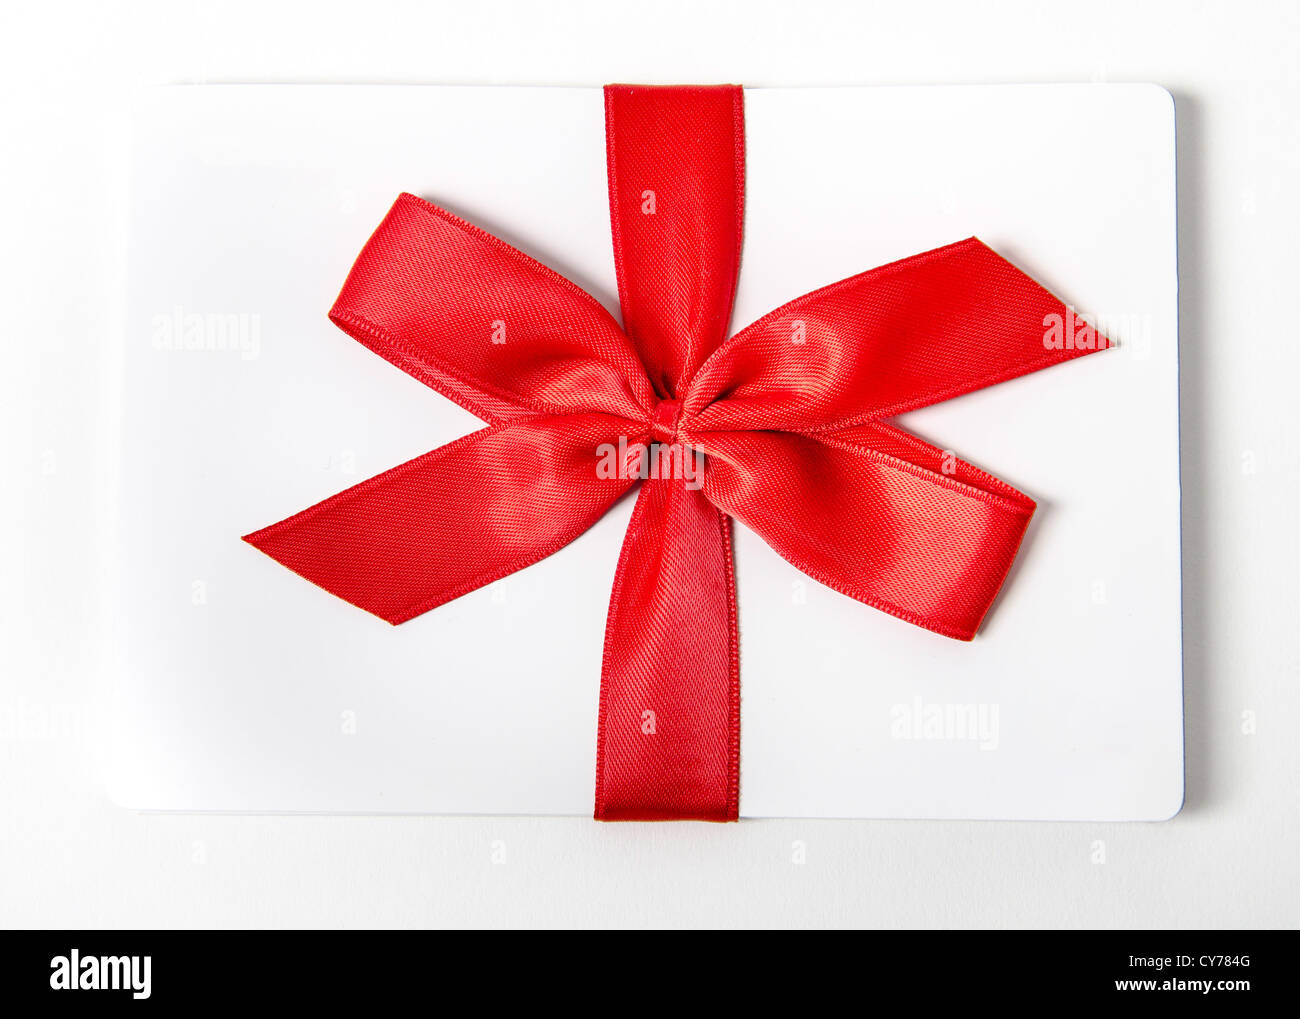 Gift box with red bow isolated on white background Stock Photo